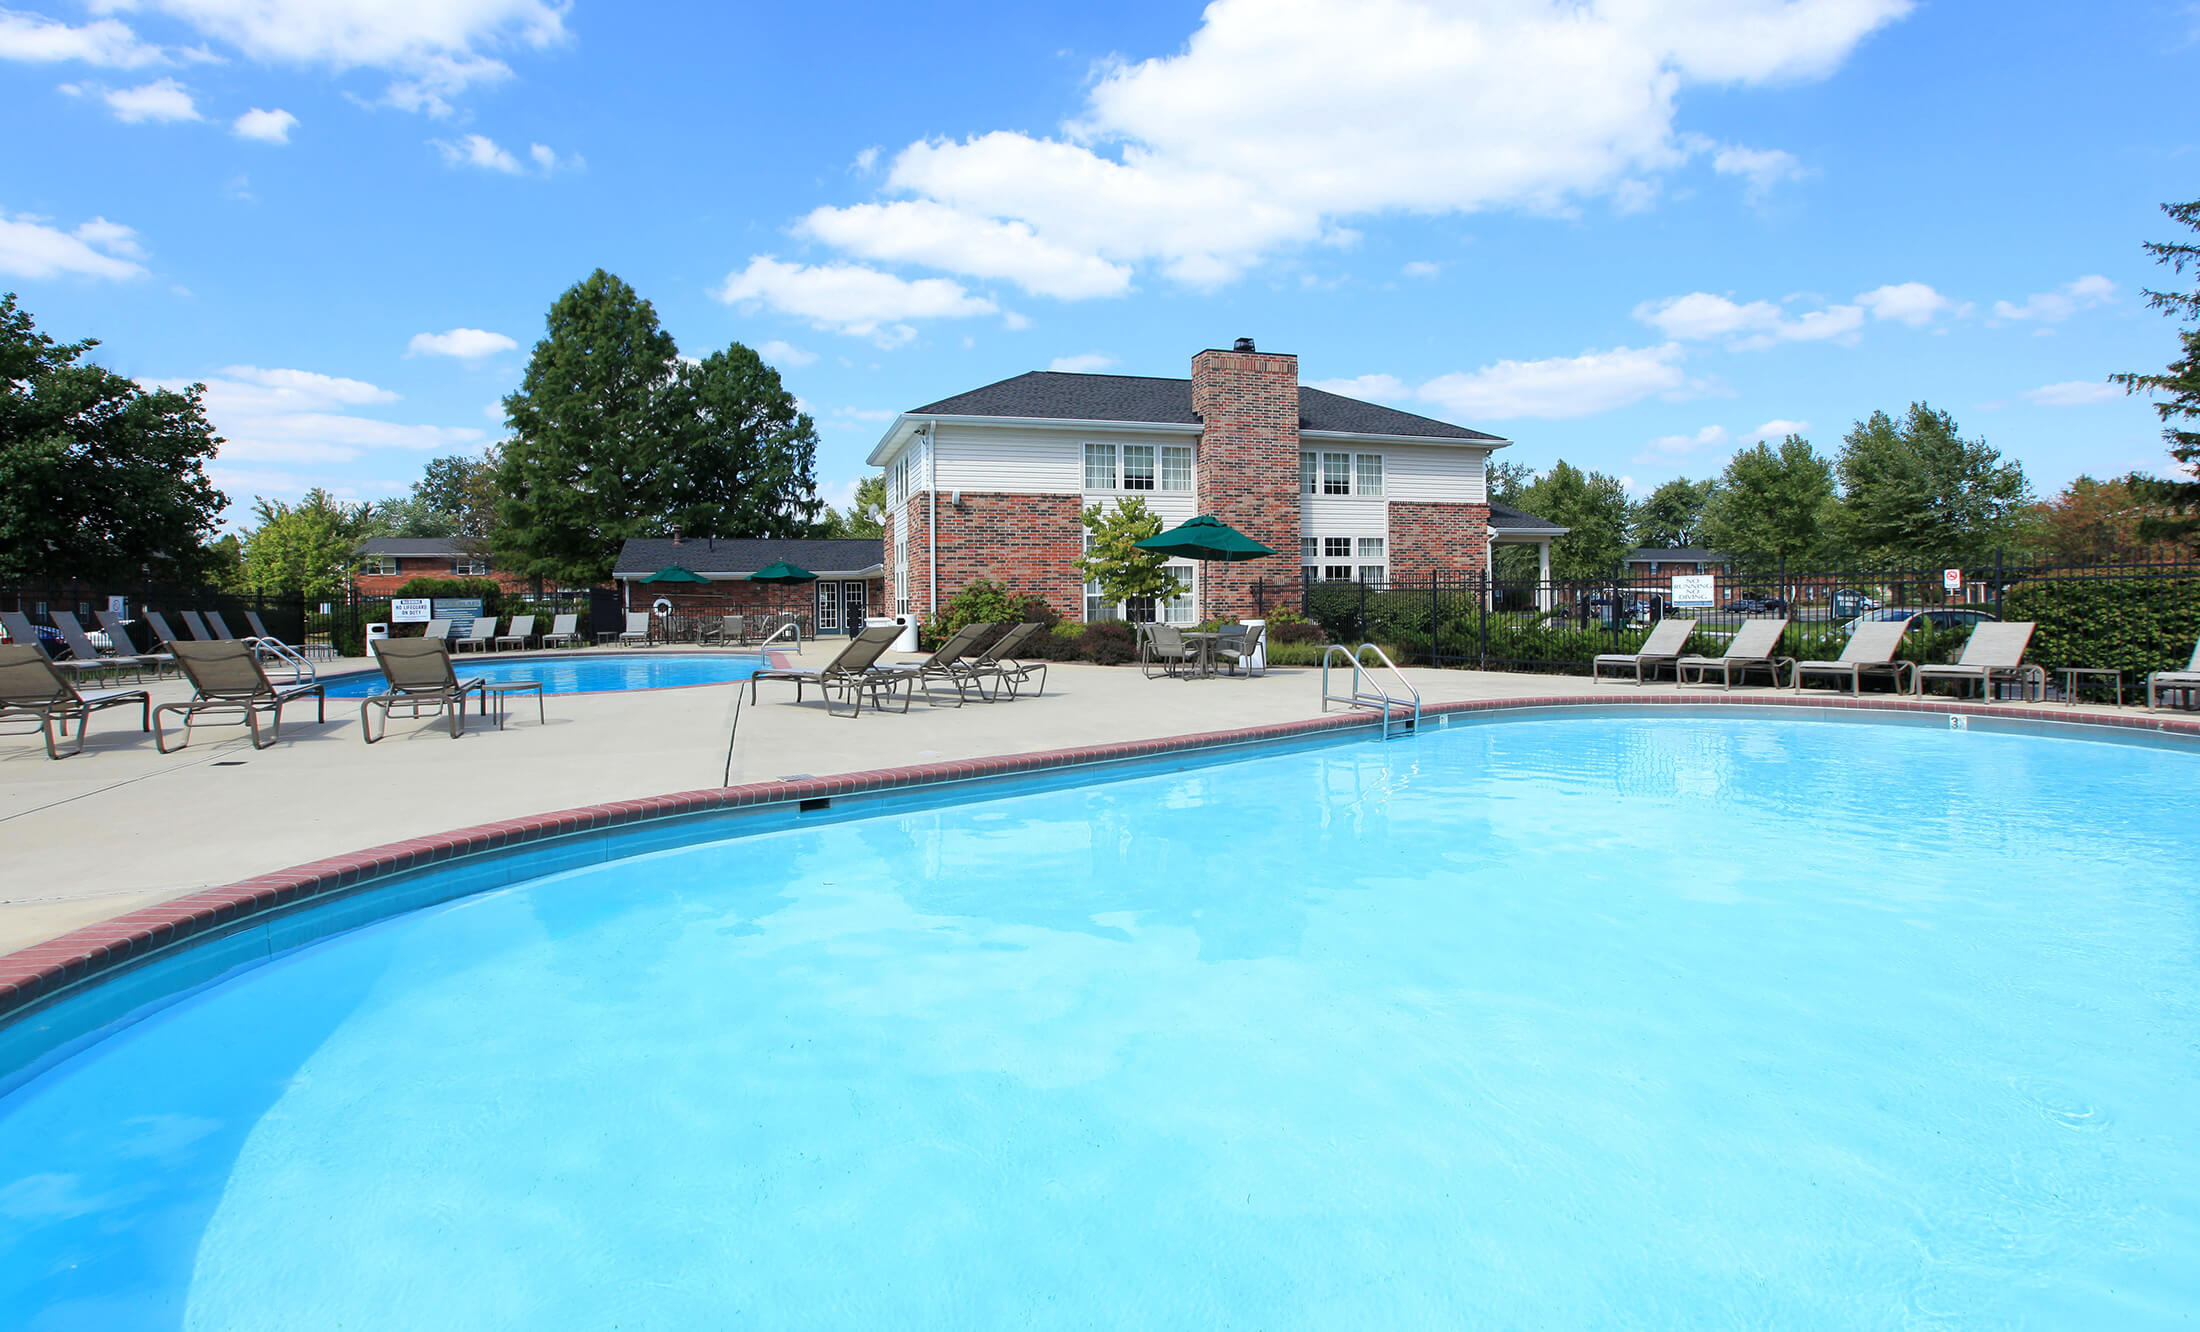 3 bedroom apartments northwest indianapolis. welcome home to reflections apartments. outstanding northwest location 3 bedroom apartments indianapolis n